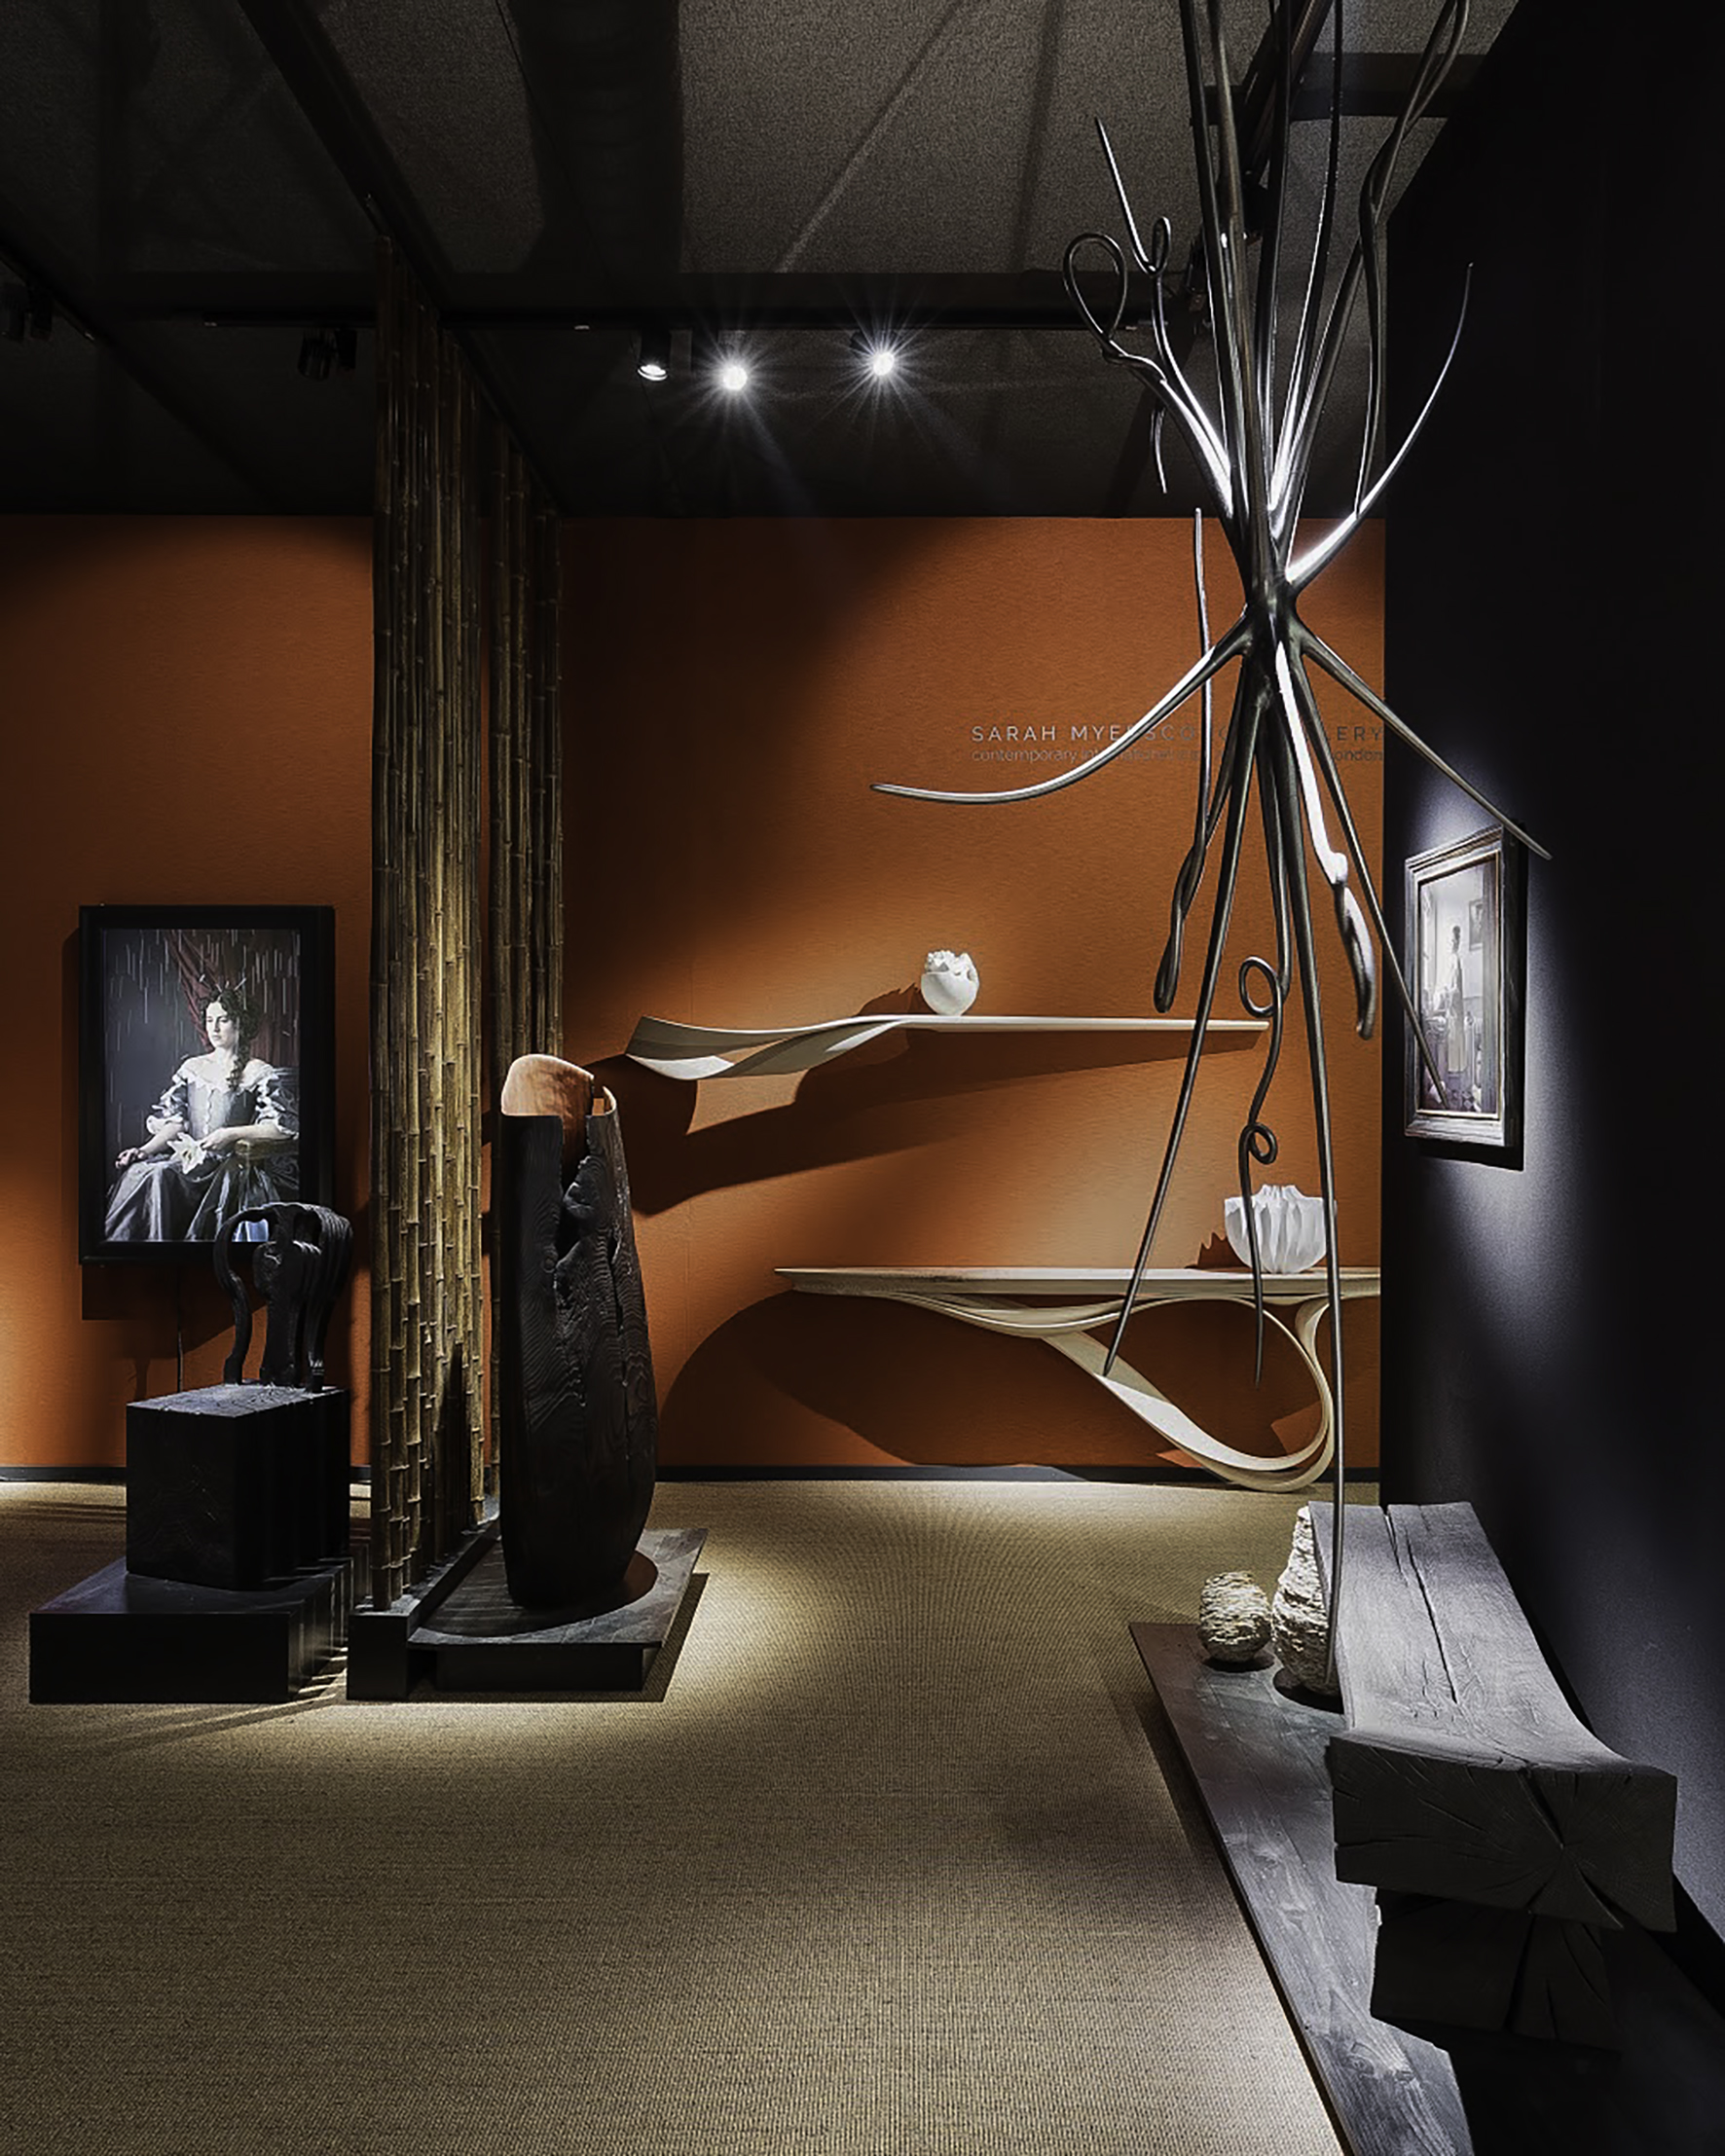 Sarah Myerscough Gallery at Masterpiece London 2019 ⓒ Ollie Hammick  On display  Ascender  sculpture by Christopher Kurtz (suspended, foreground),  Enignum  consoles by Joseph Walsh (background) ,  Scorched Embrace  Table, by Jim Partridge and Liz Walmsley and  Down Pour  Video piece by Maisie Breoadhead (background, left)